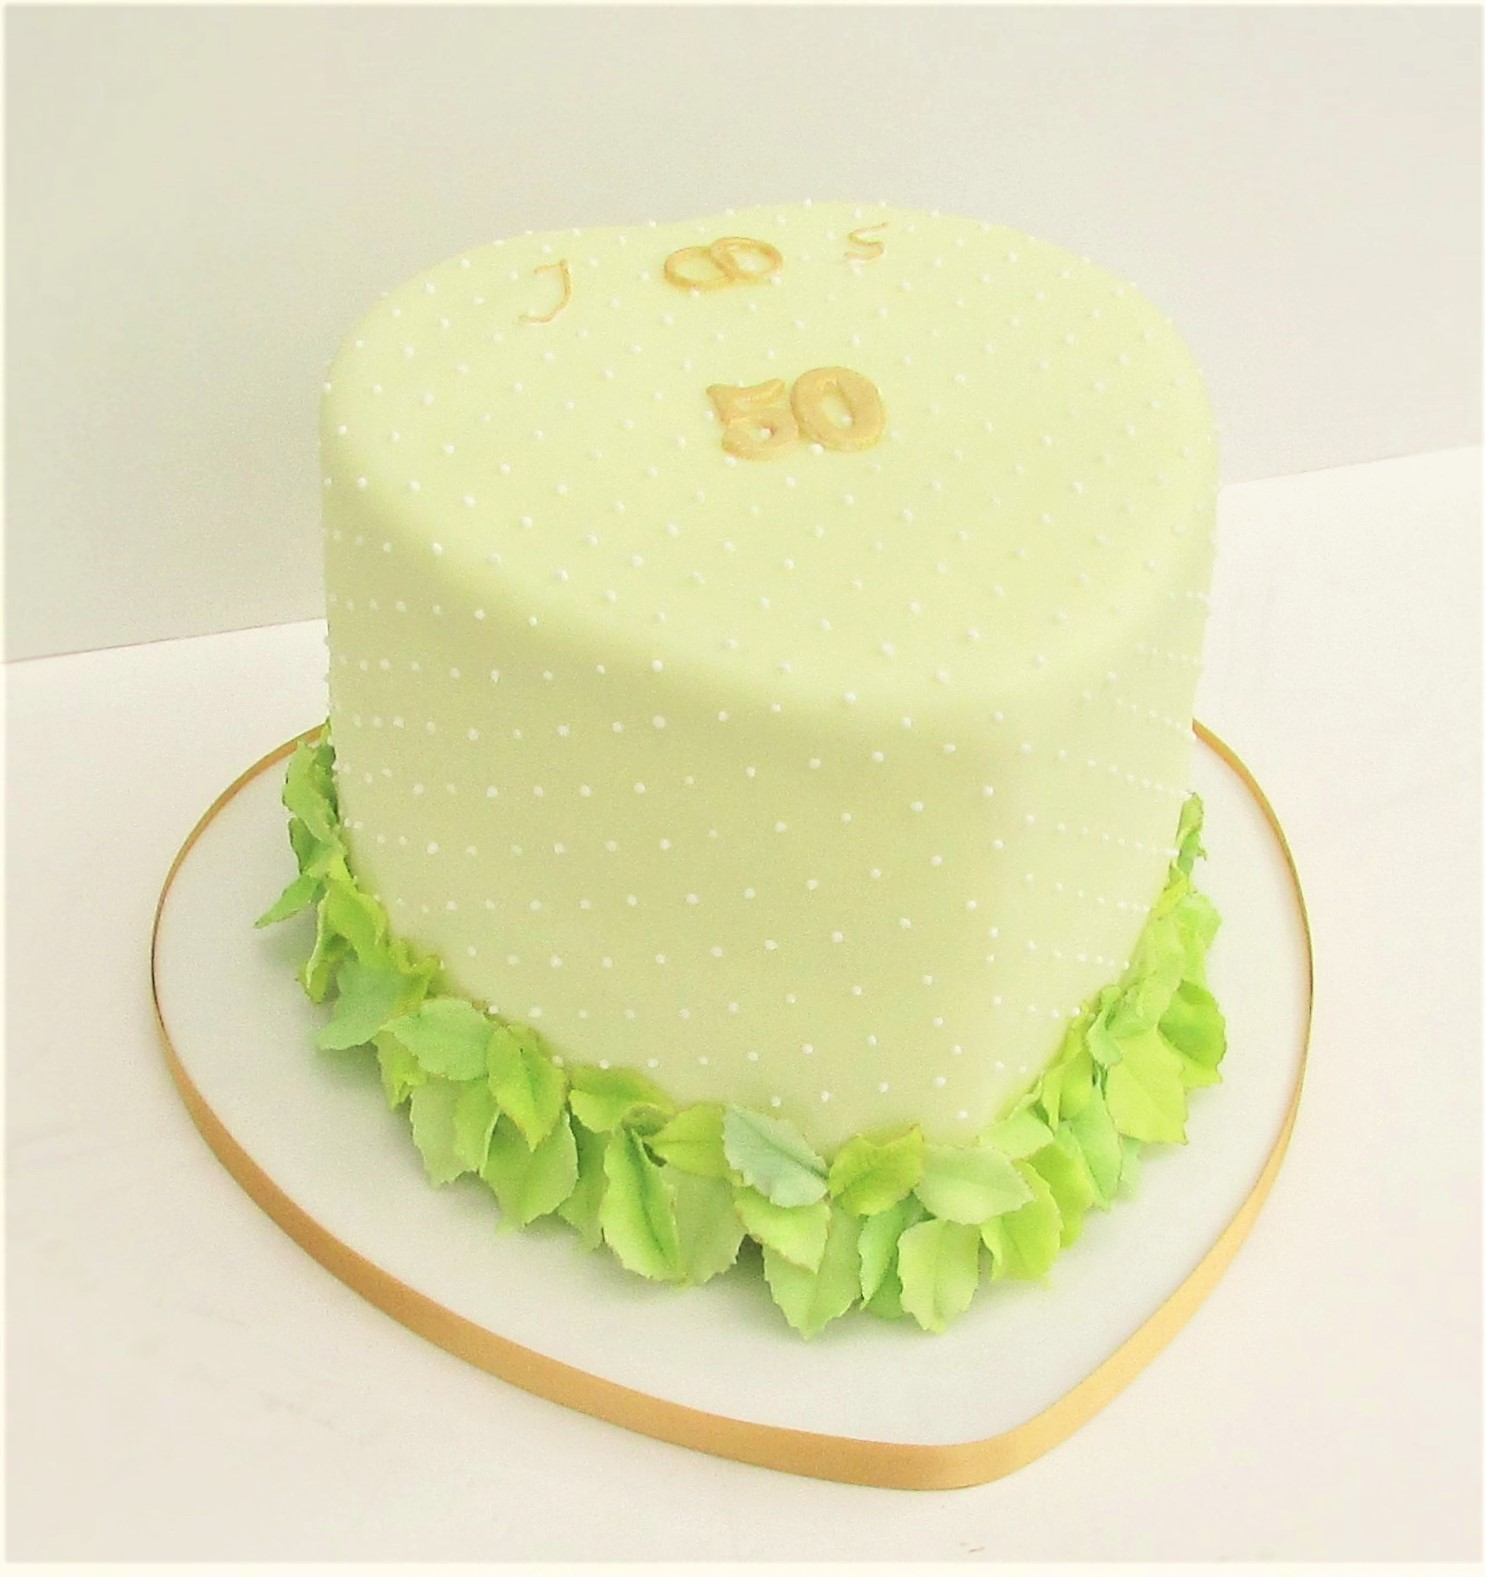 Yellow heart party cake with dots and leaves